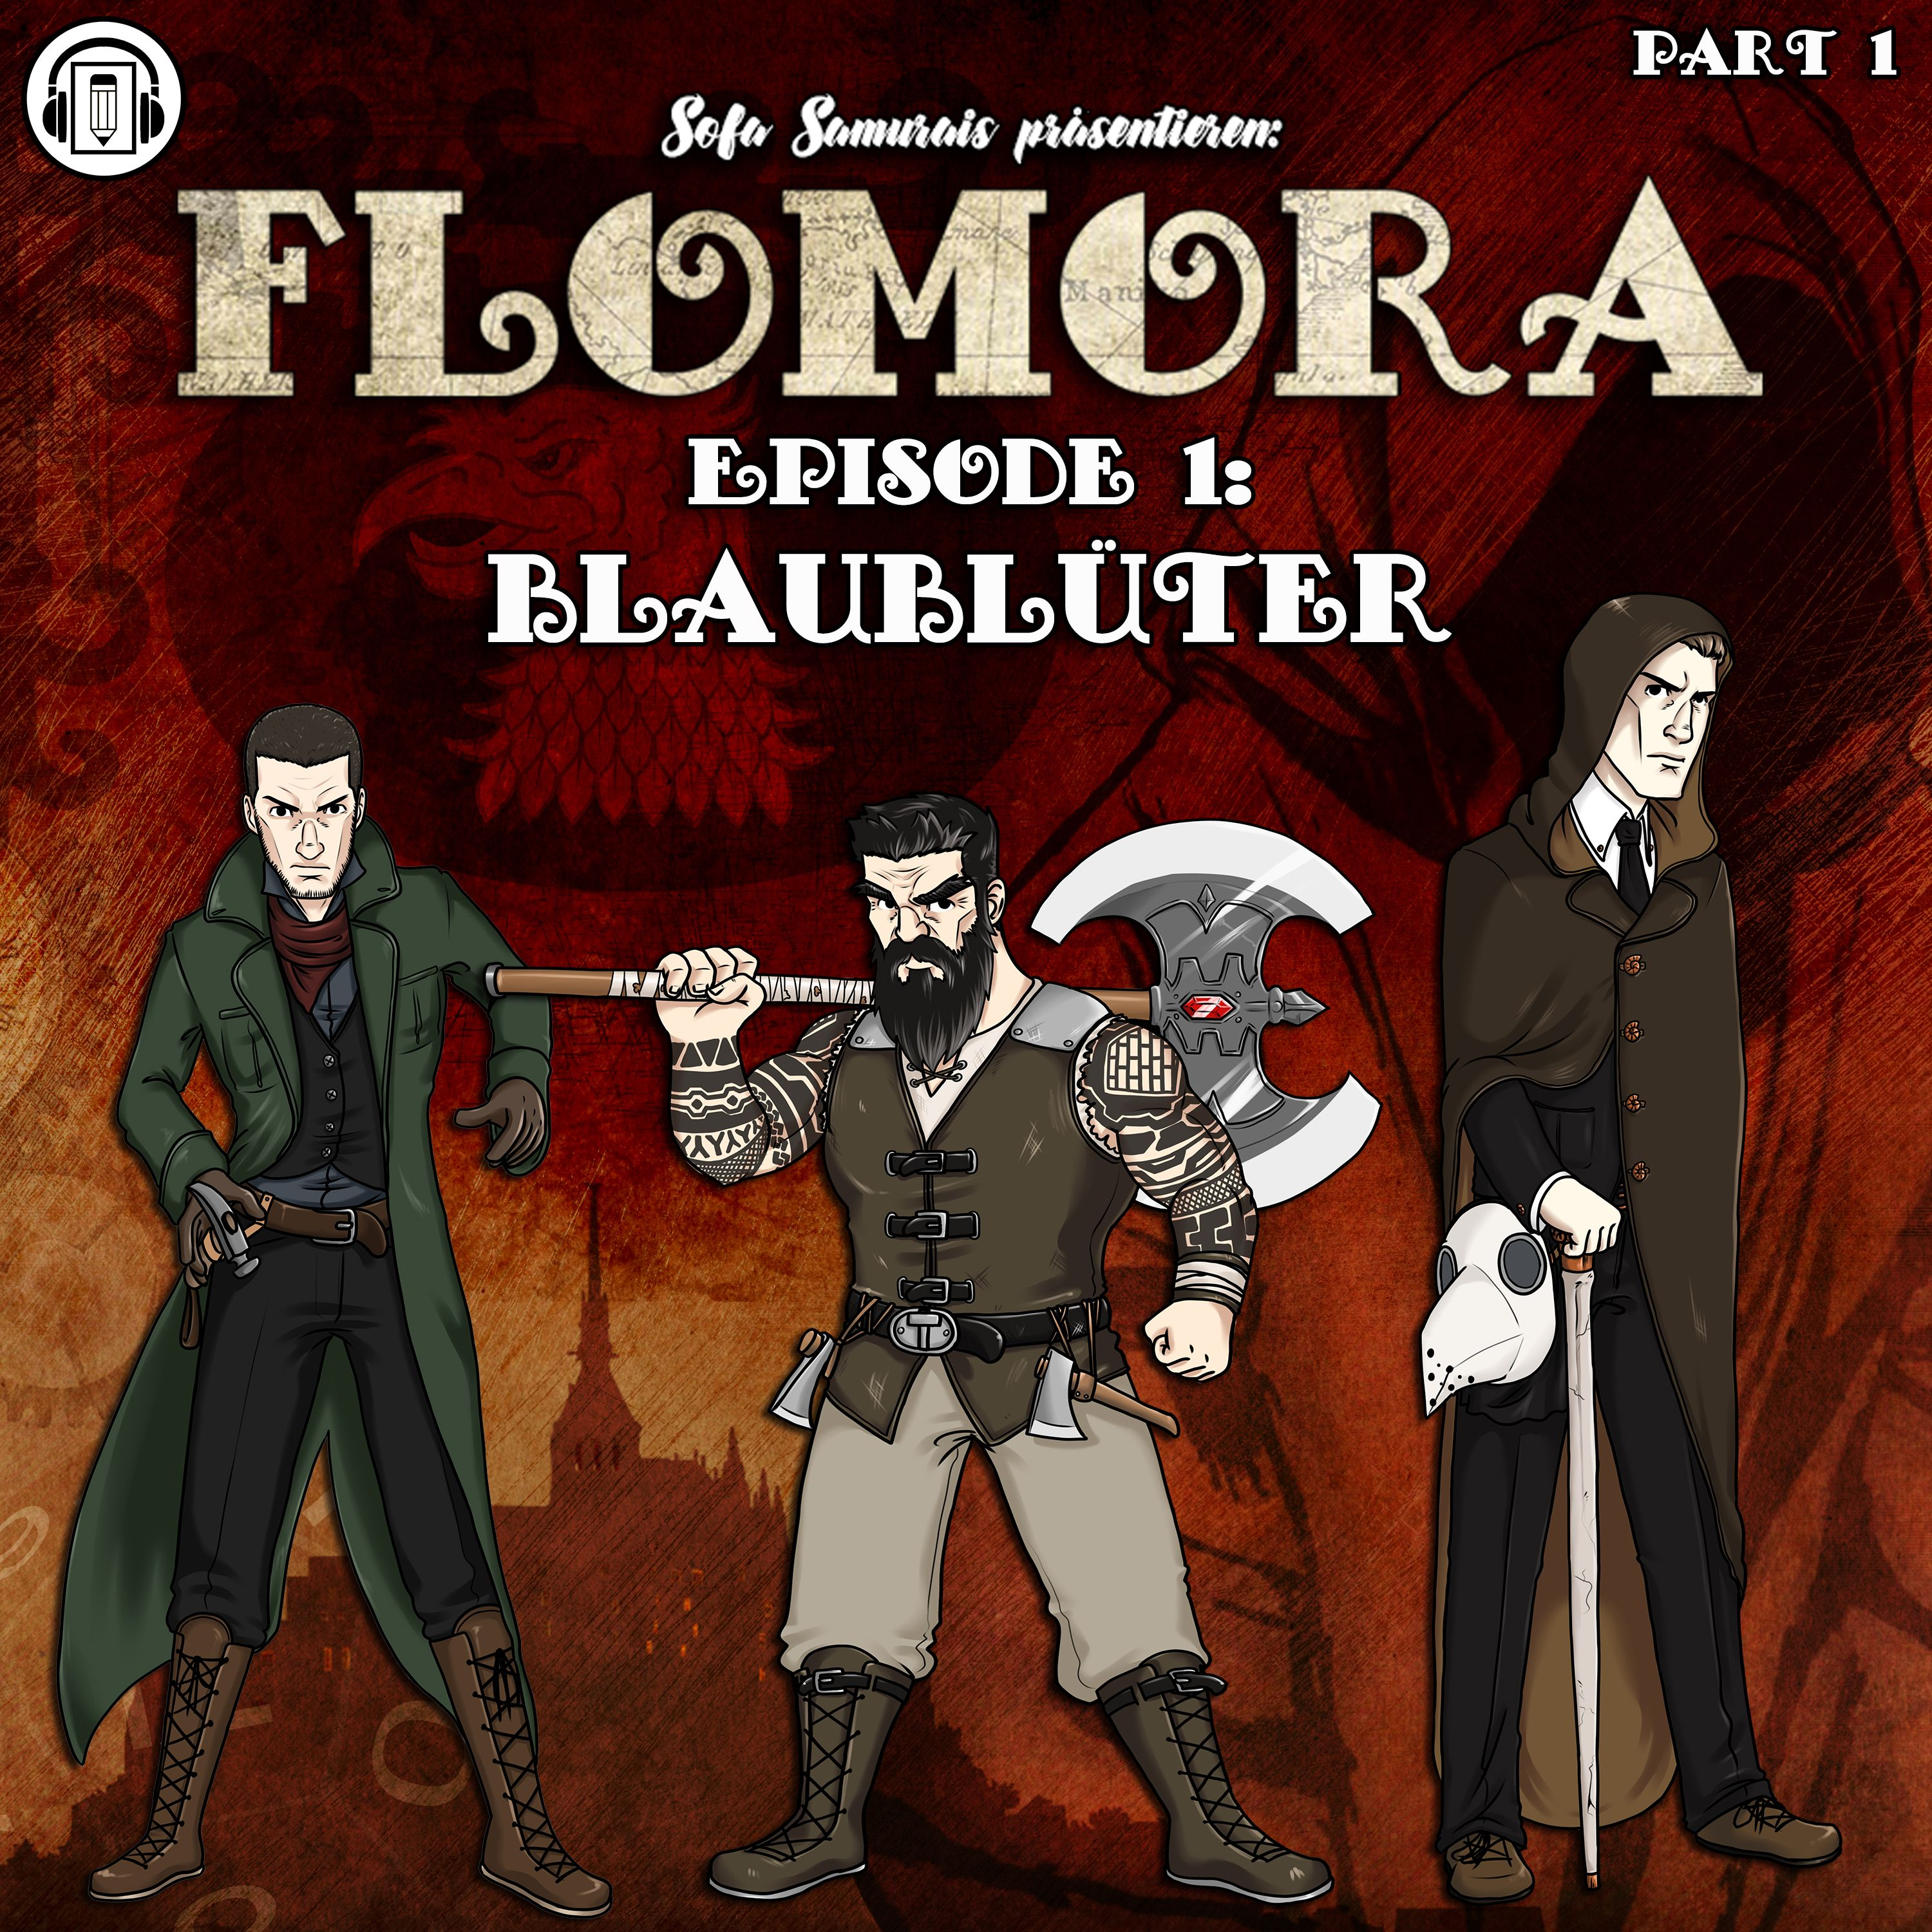 Flomora_Episodenbild_Ep1_p1-compressed